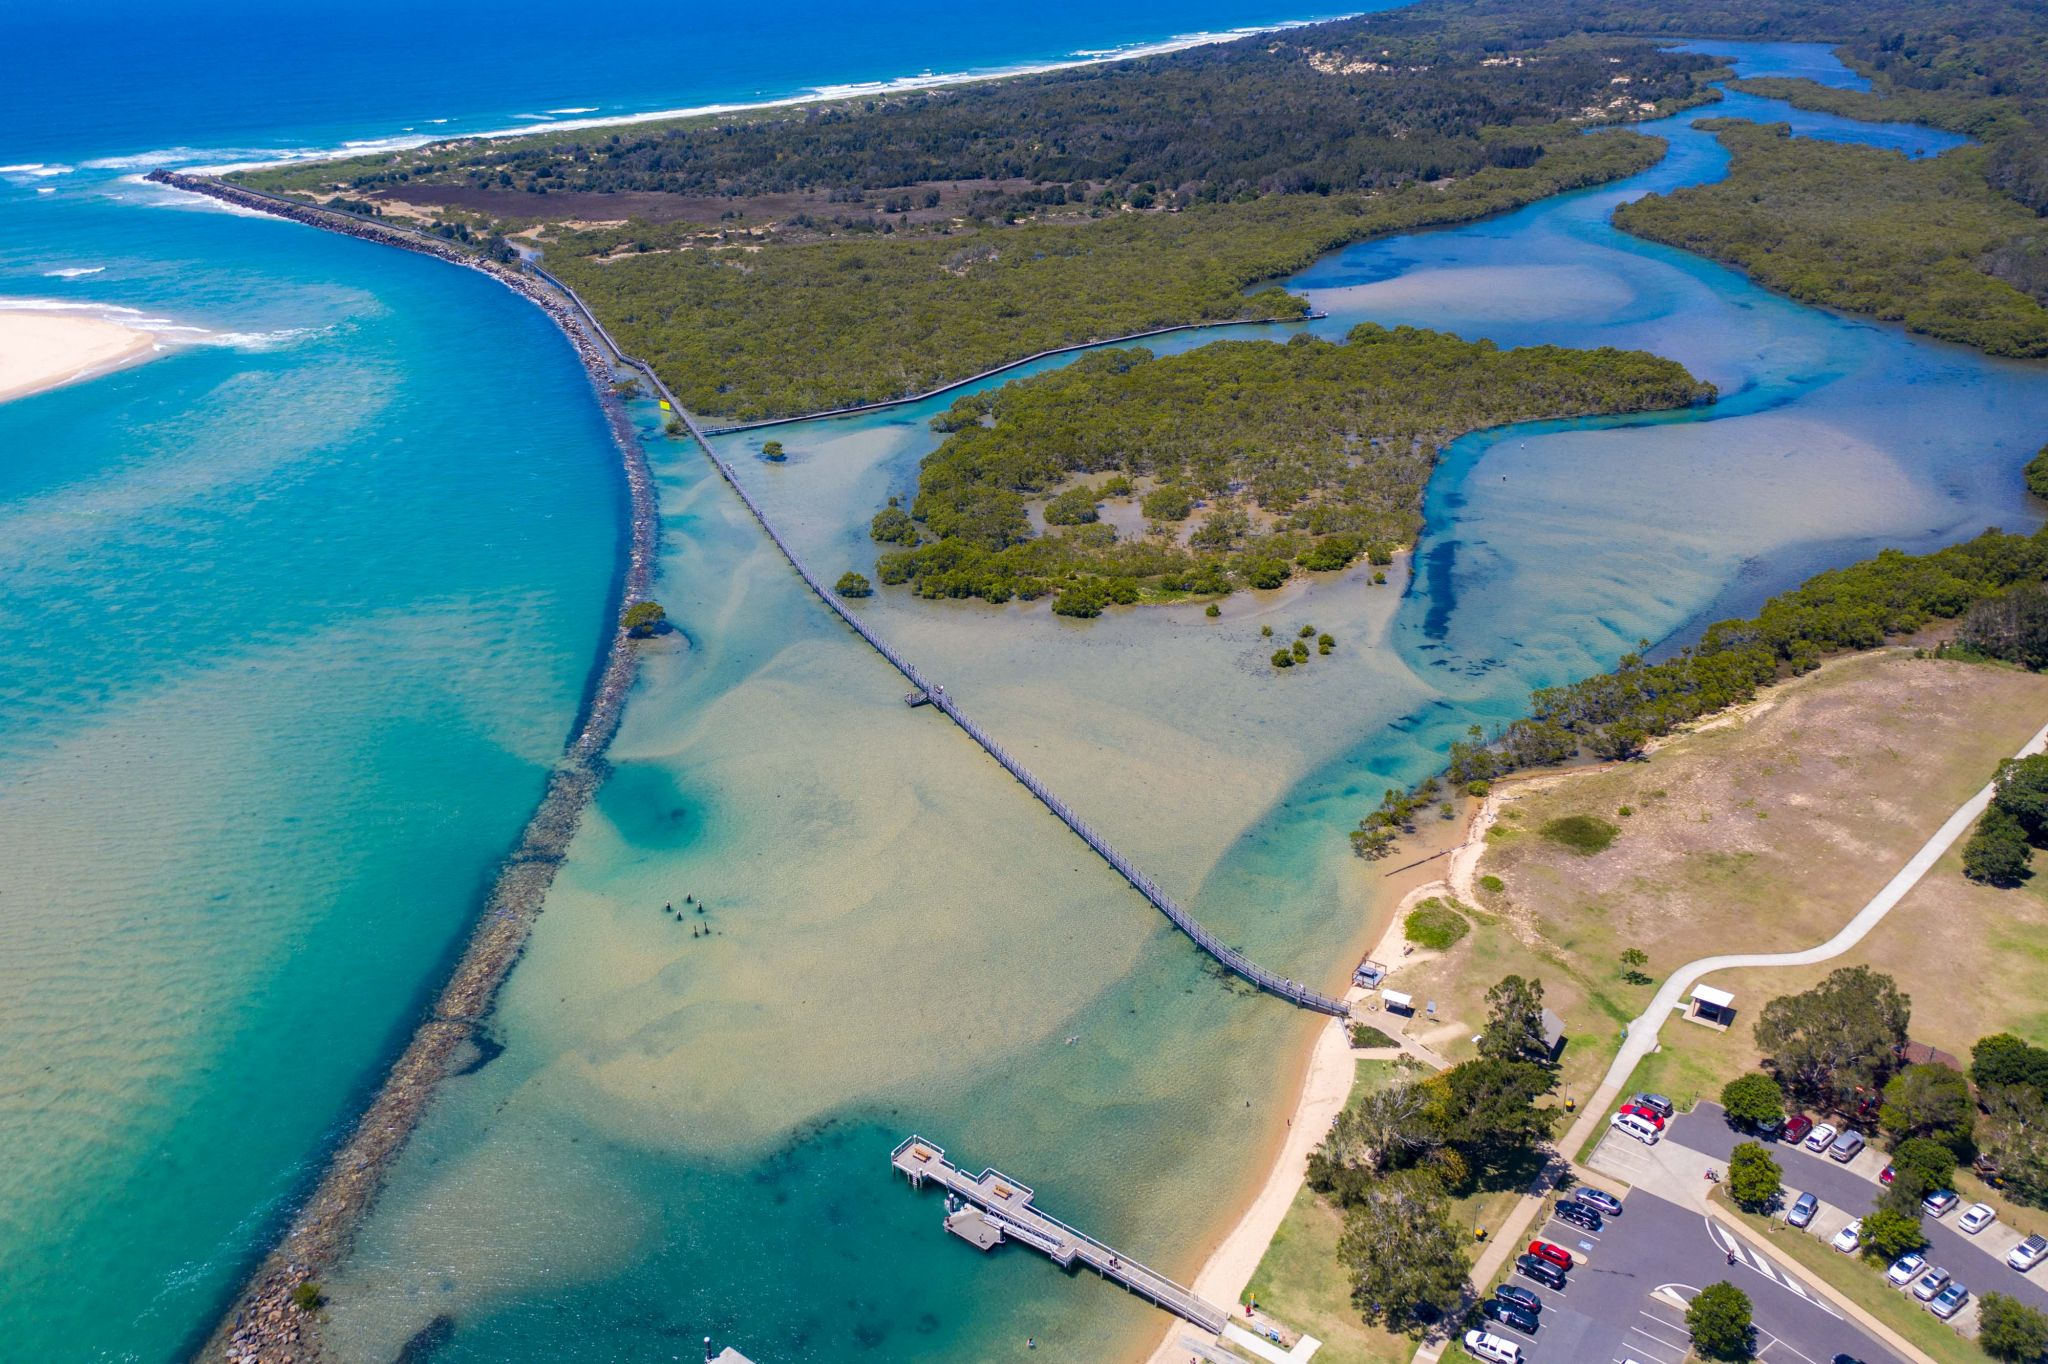 Drone view of the boardwalk at Urunga, New South Wales, Australia